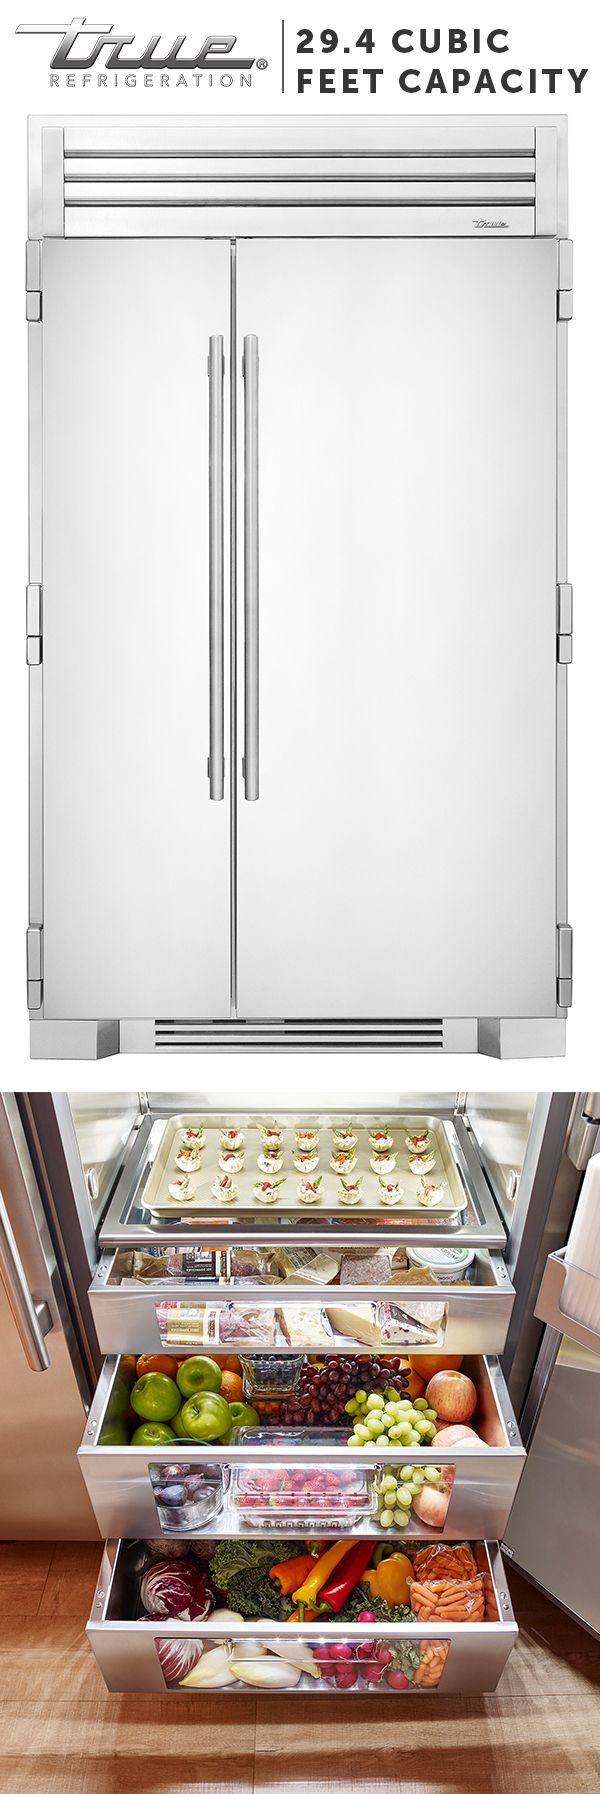 "Our 48"" side-by-side is more than 29.4 cubic feet of stylish, stainless steel refrigeration. This full-sized refrigerator gives high-end residential kitchens the look, work space, and performance of the best professional kitchens around the world."